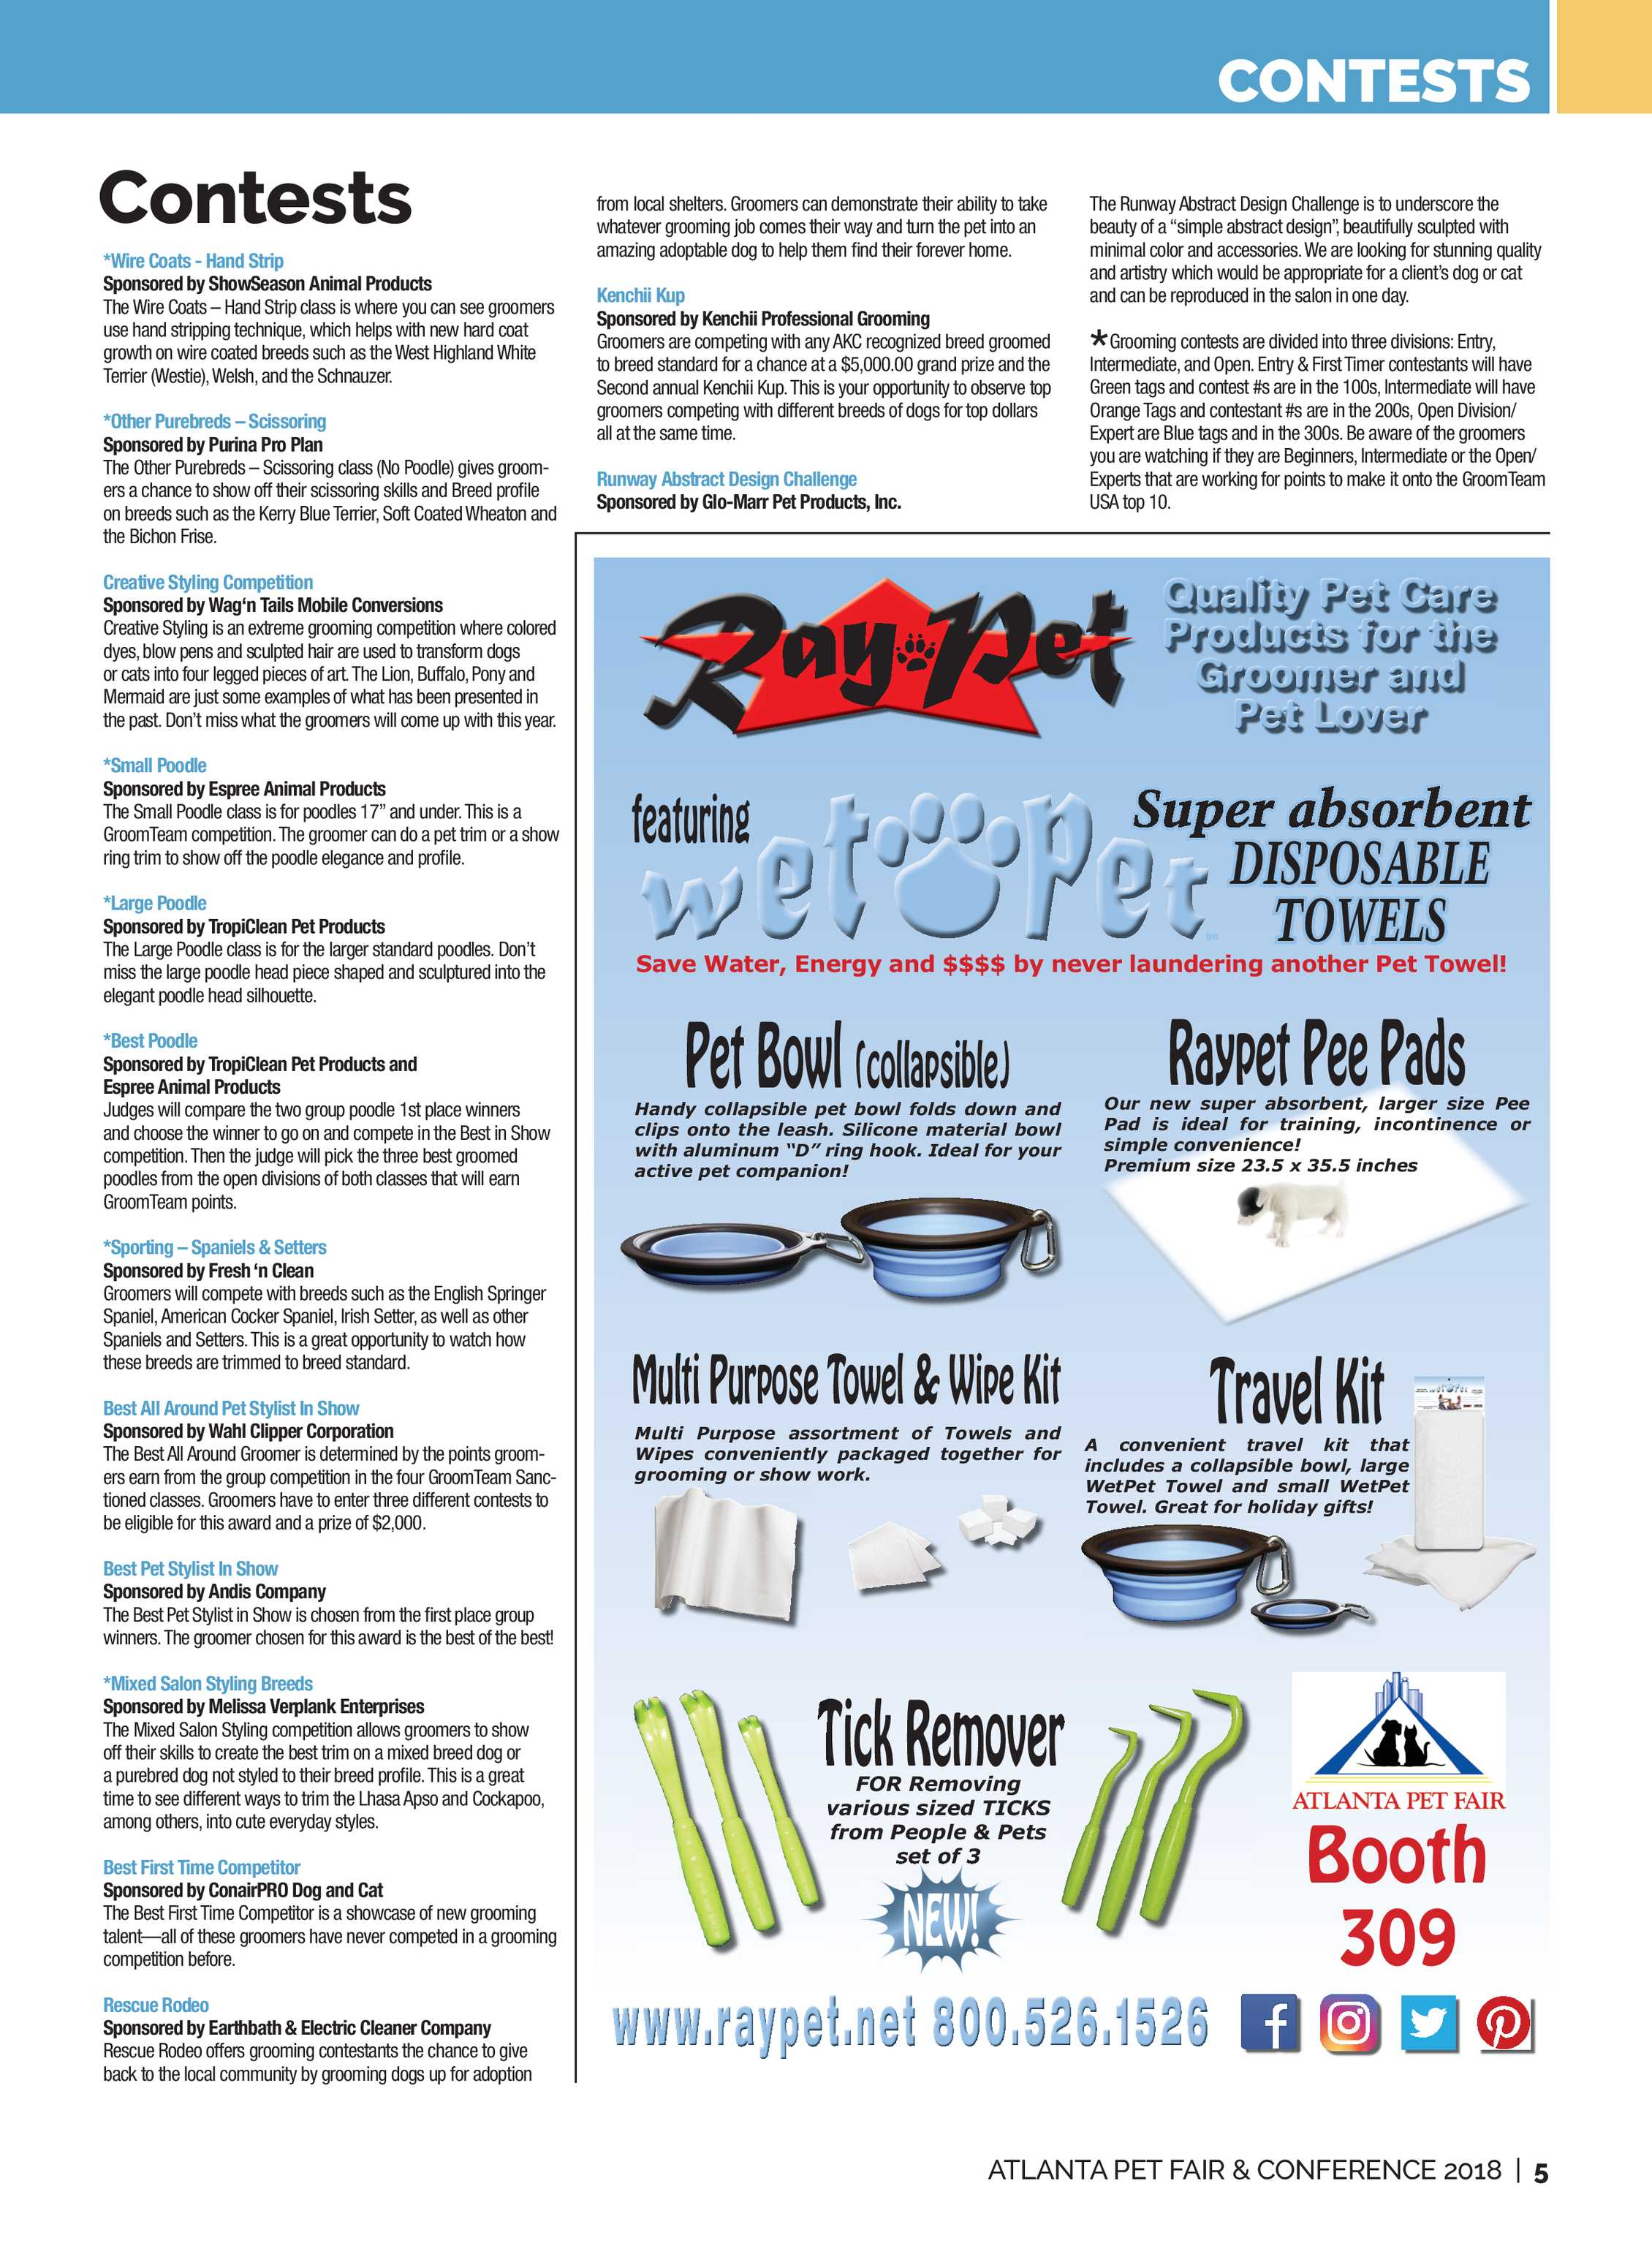 Pet Product News - Atlanta Pet Fair 2018 - page 5